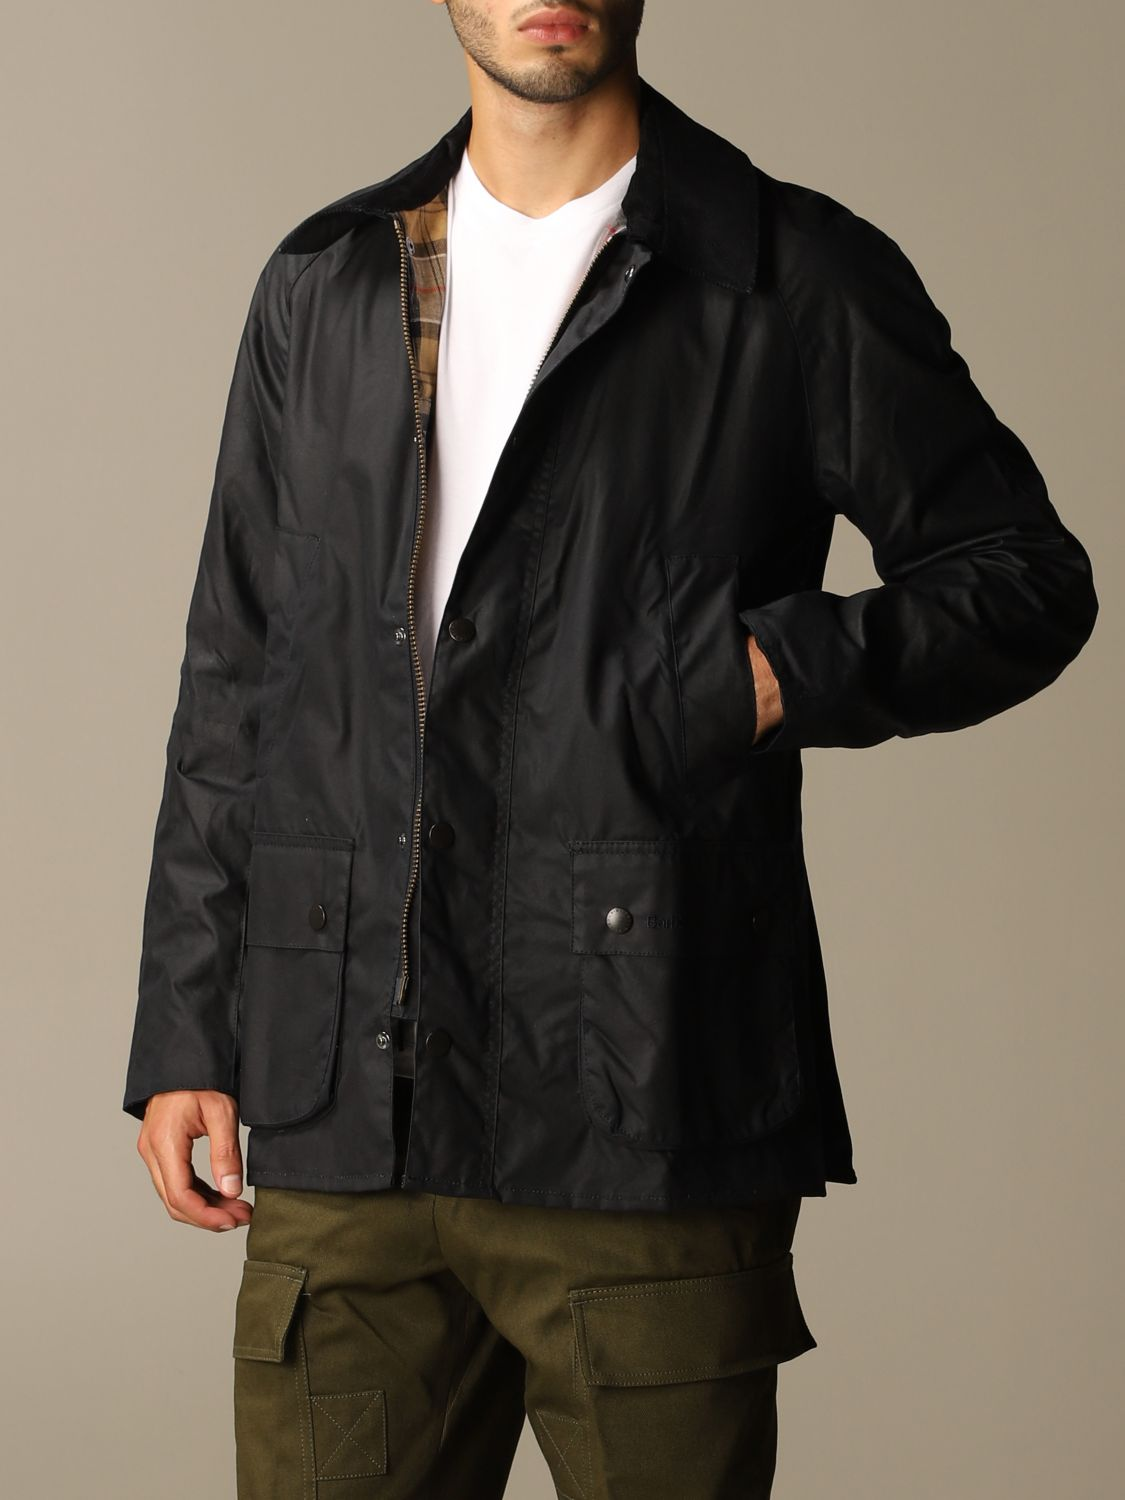 Giacca Barbour: Giacca Ashby Barbour in cotone spalmato blue 4